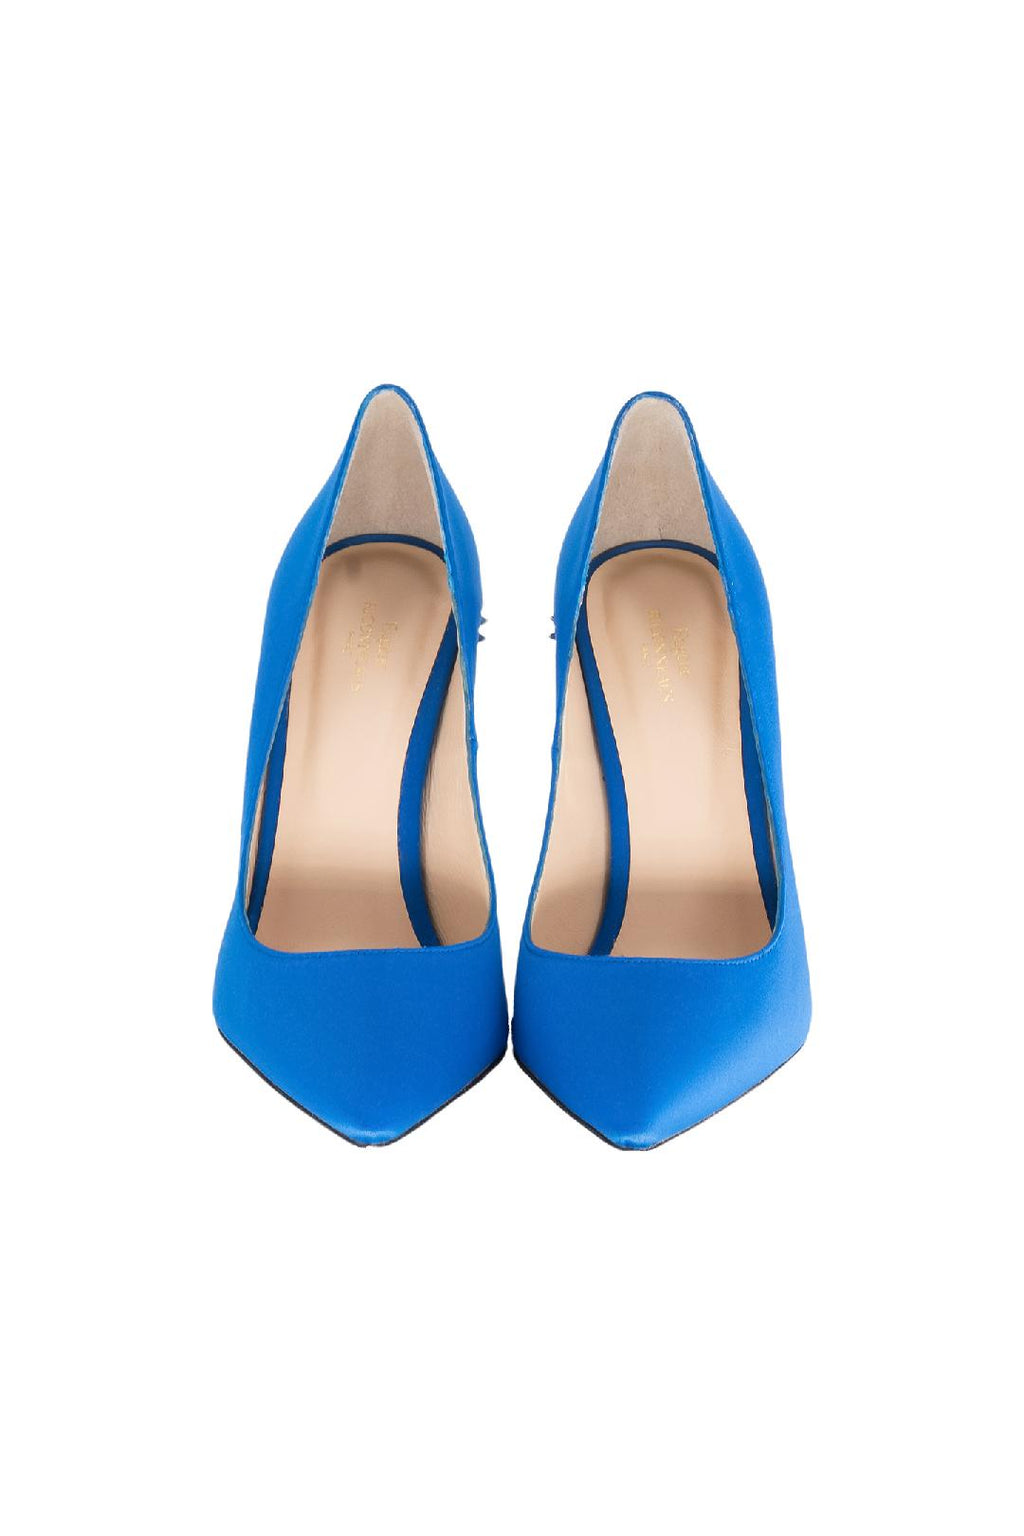 Royal Blue Satin Crown Pump